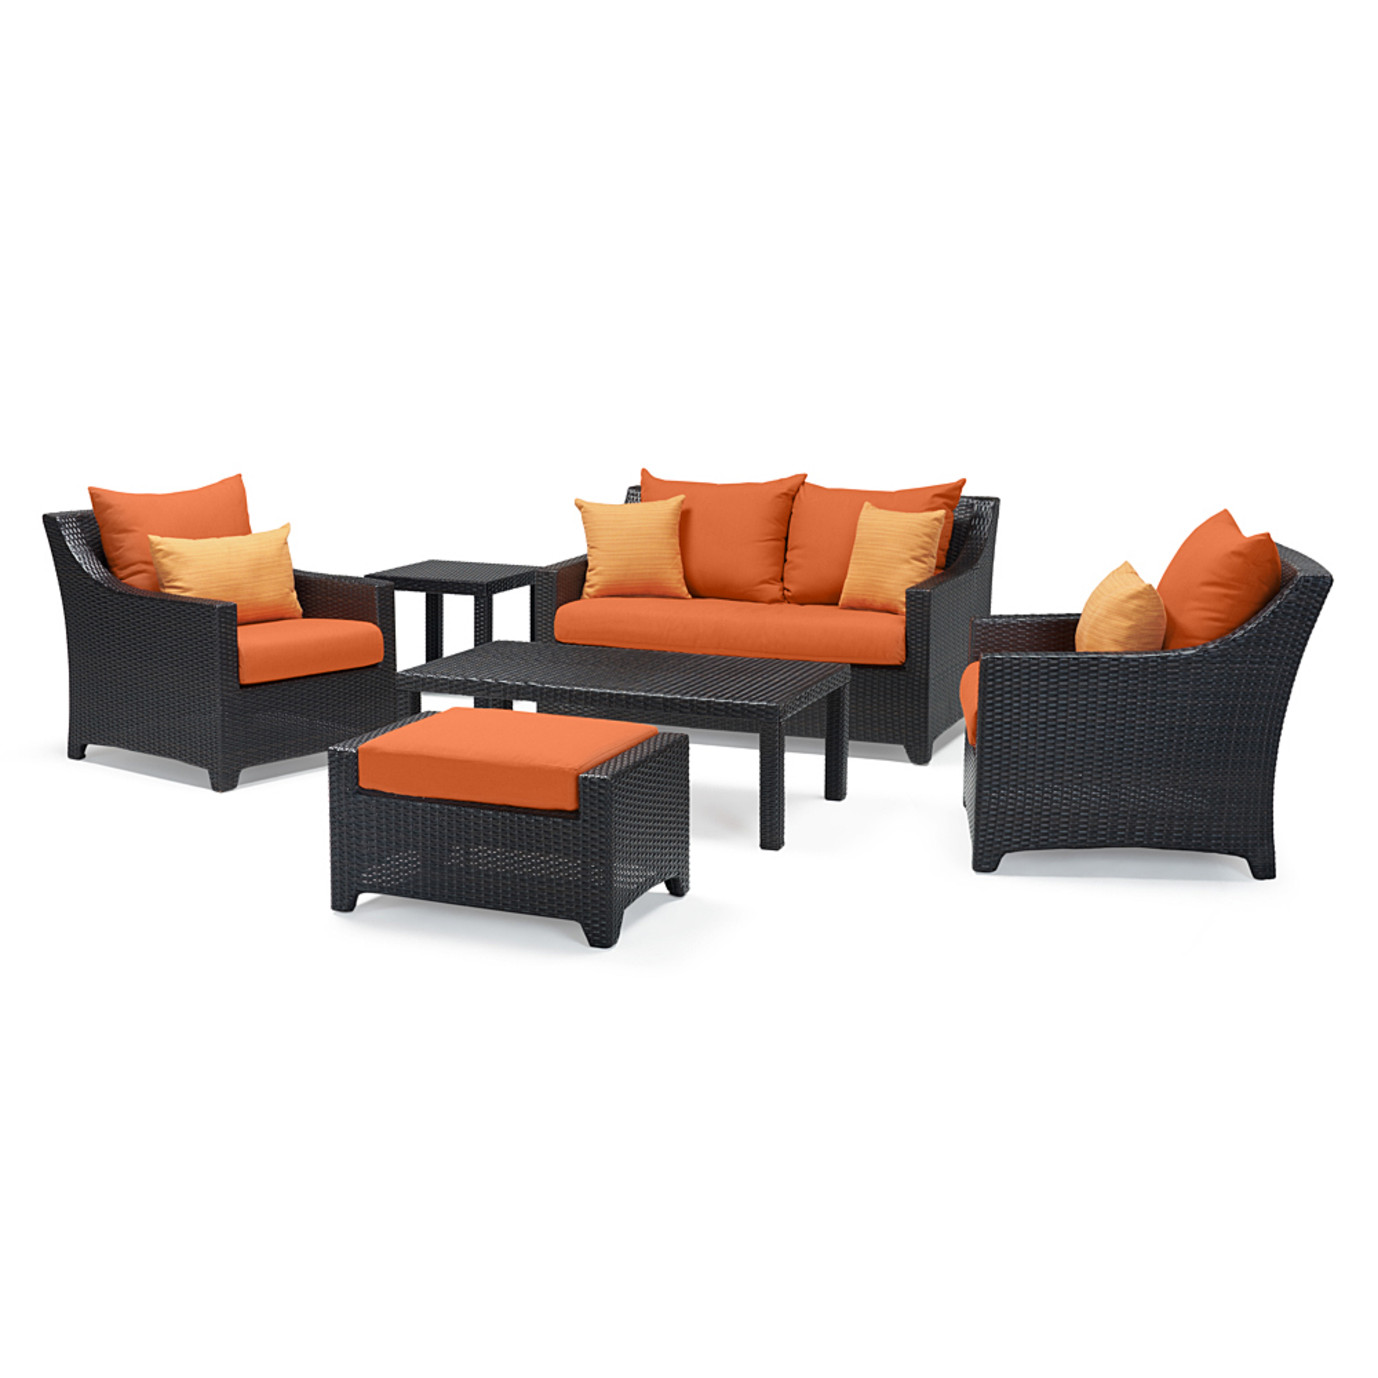 Deco™ 6pc Love and Club Seating Set - Tikka Orange